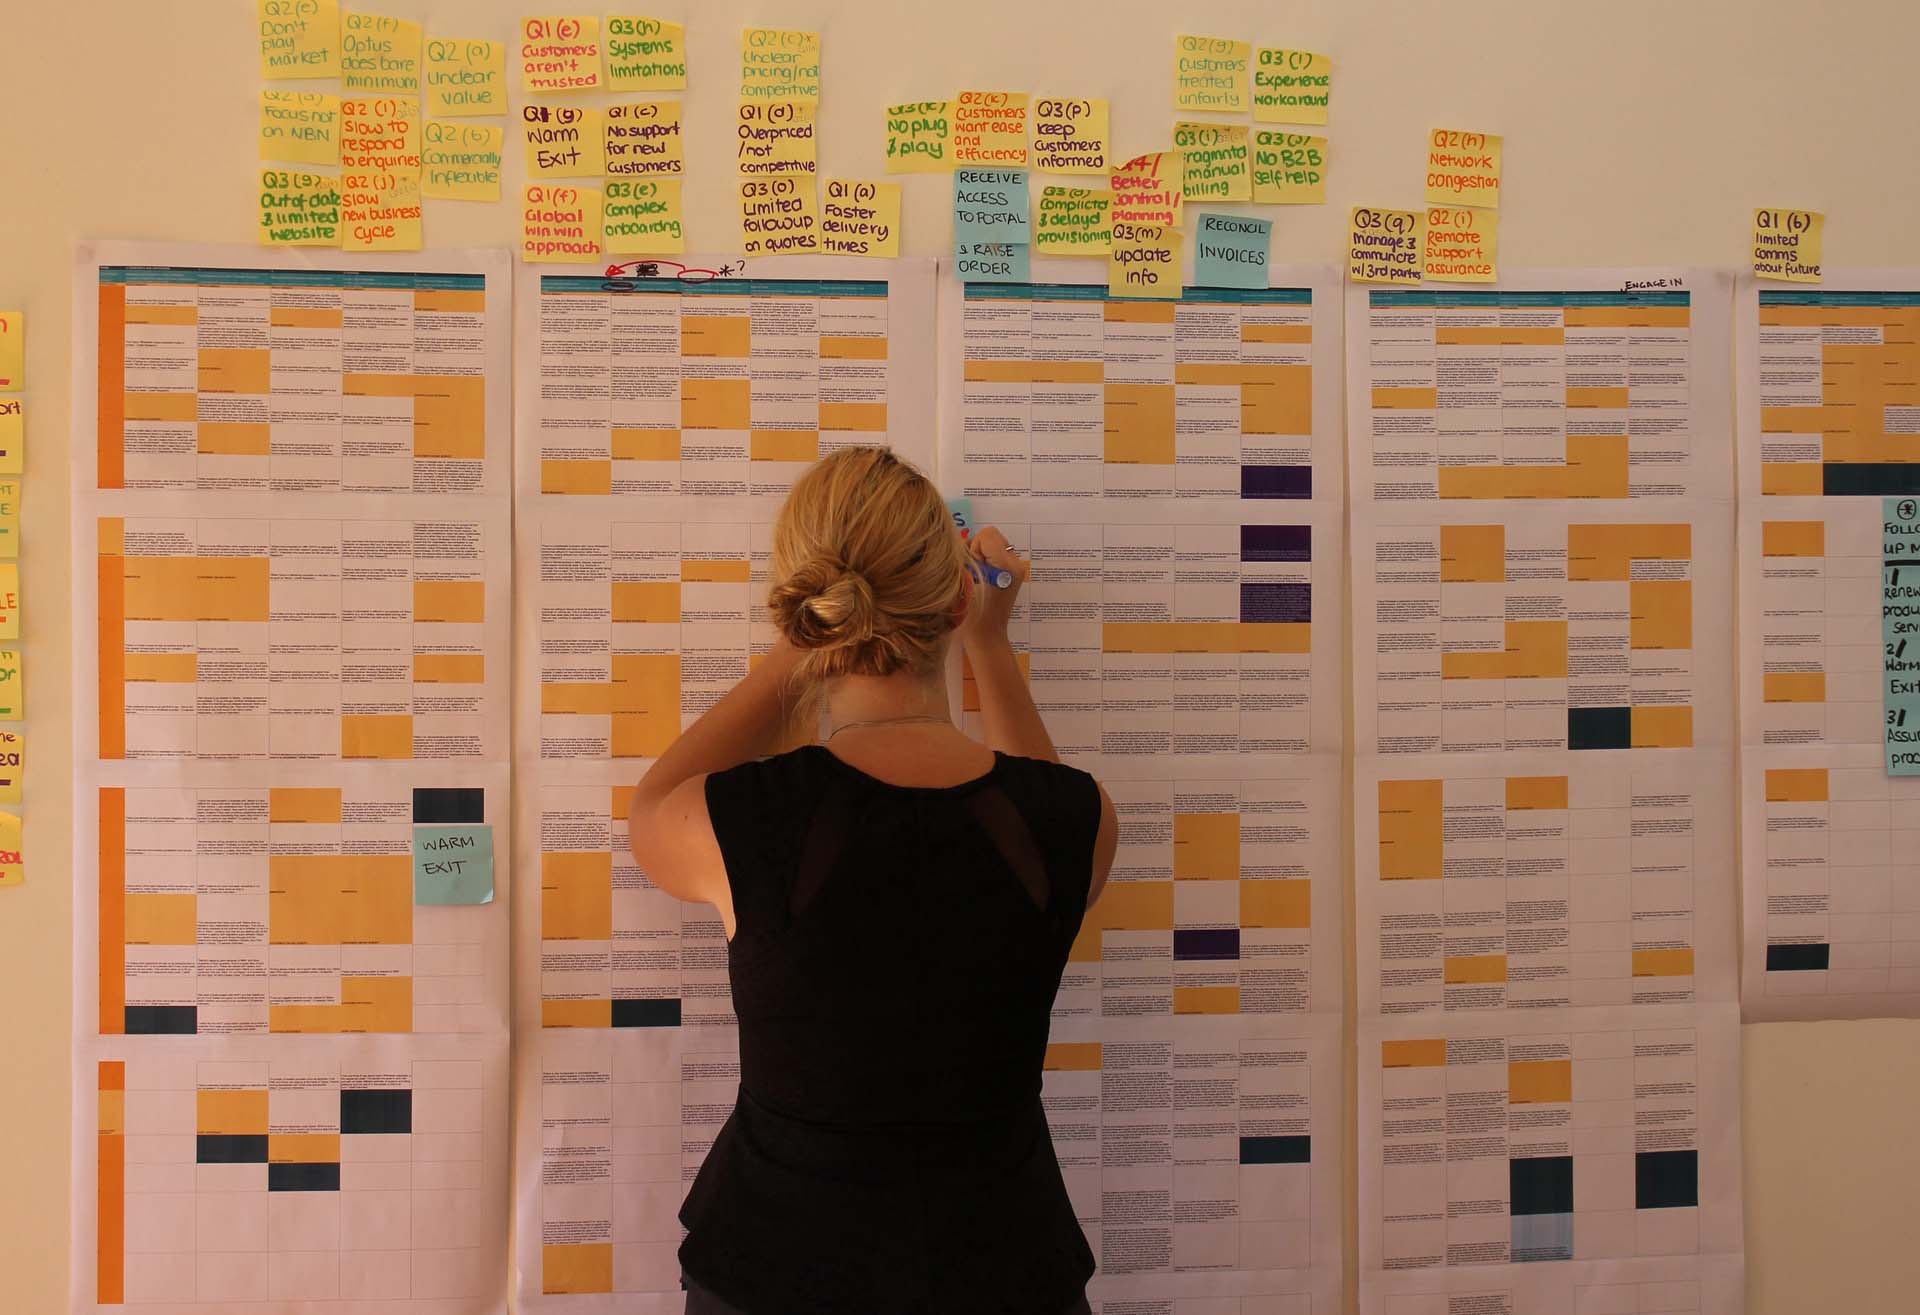 Proto experience designer working on a large wall of customer data